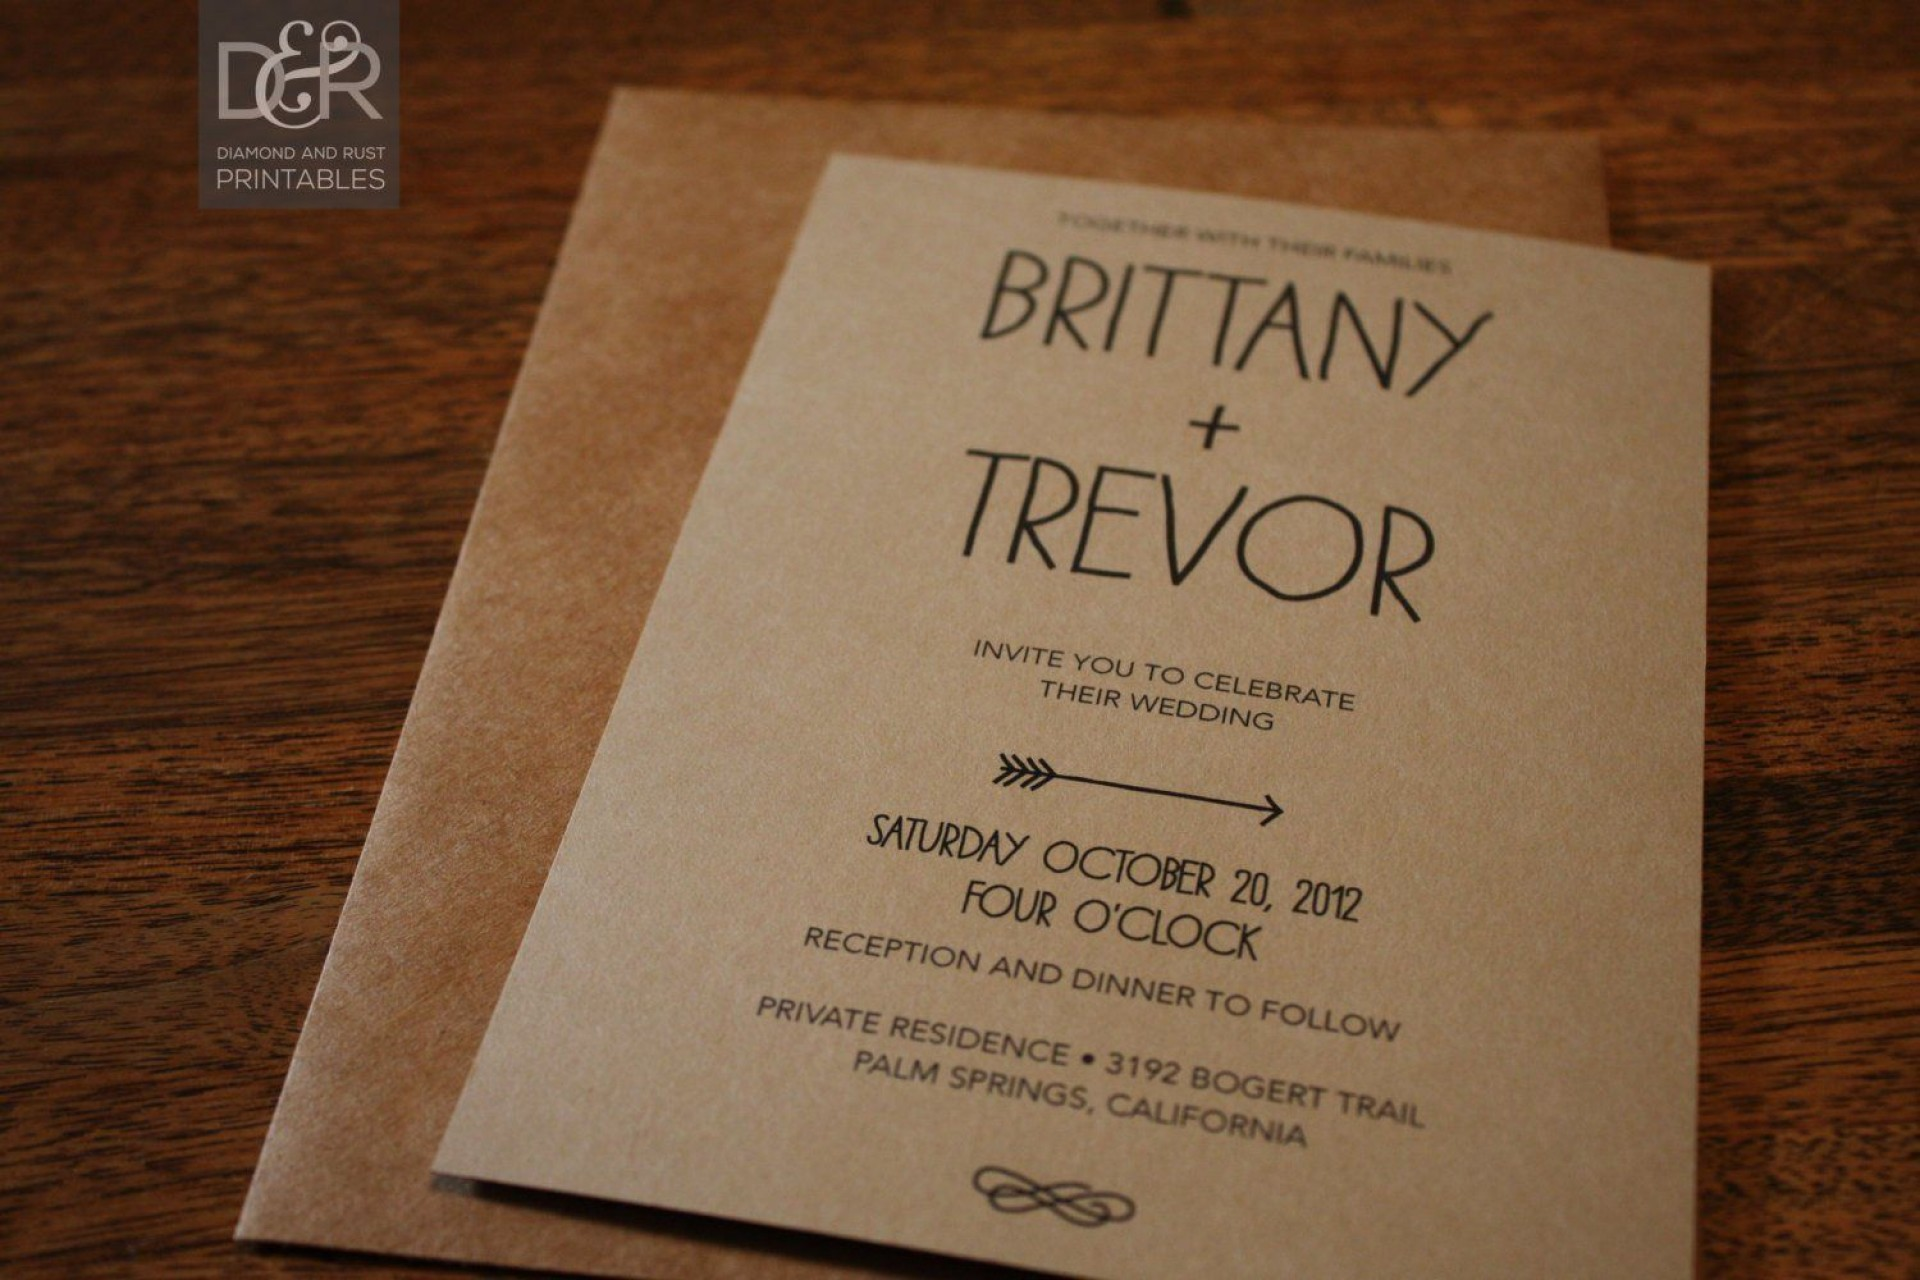 006 Fascinating Rustic Wedding Invitation Template Example  Templates Free For Word Maker Photoshop1920